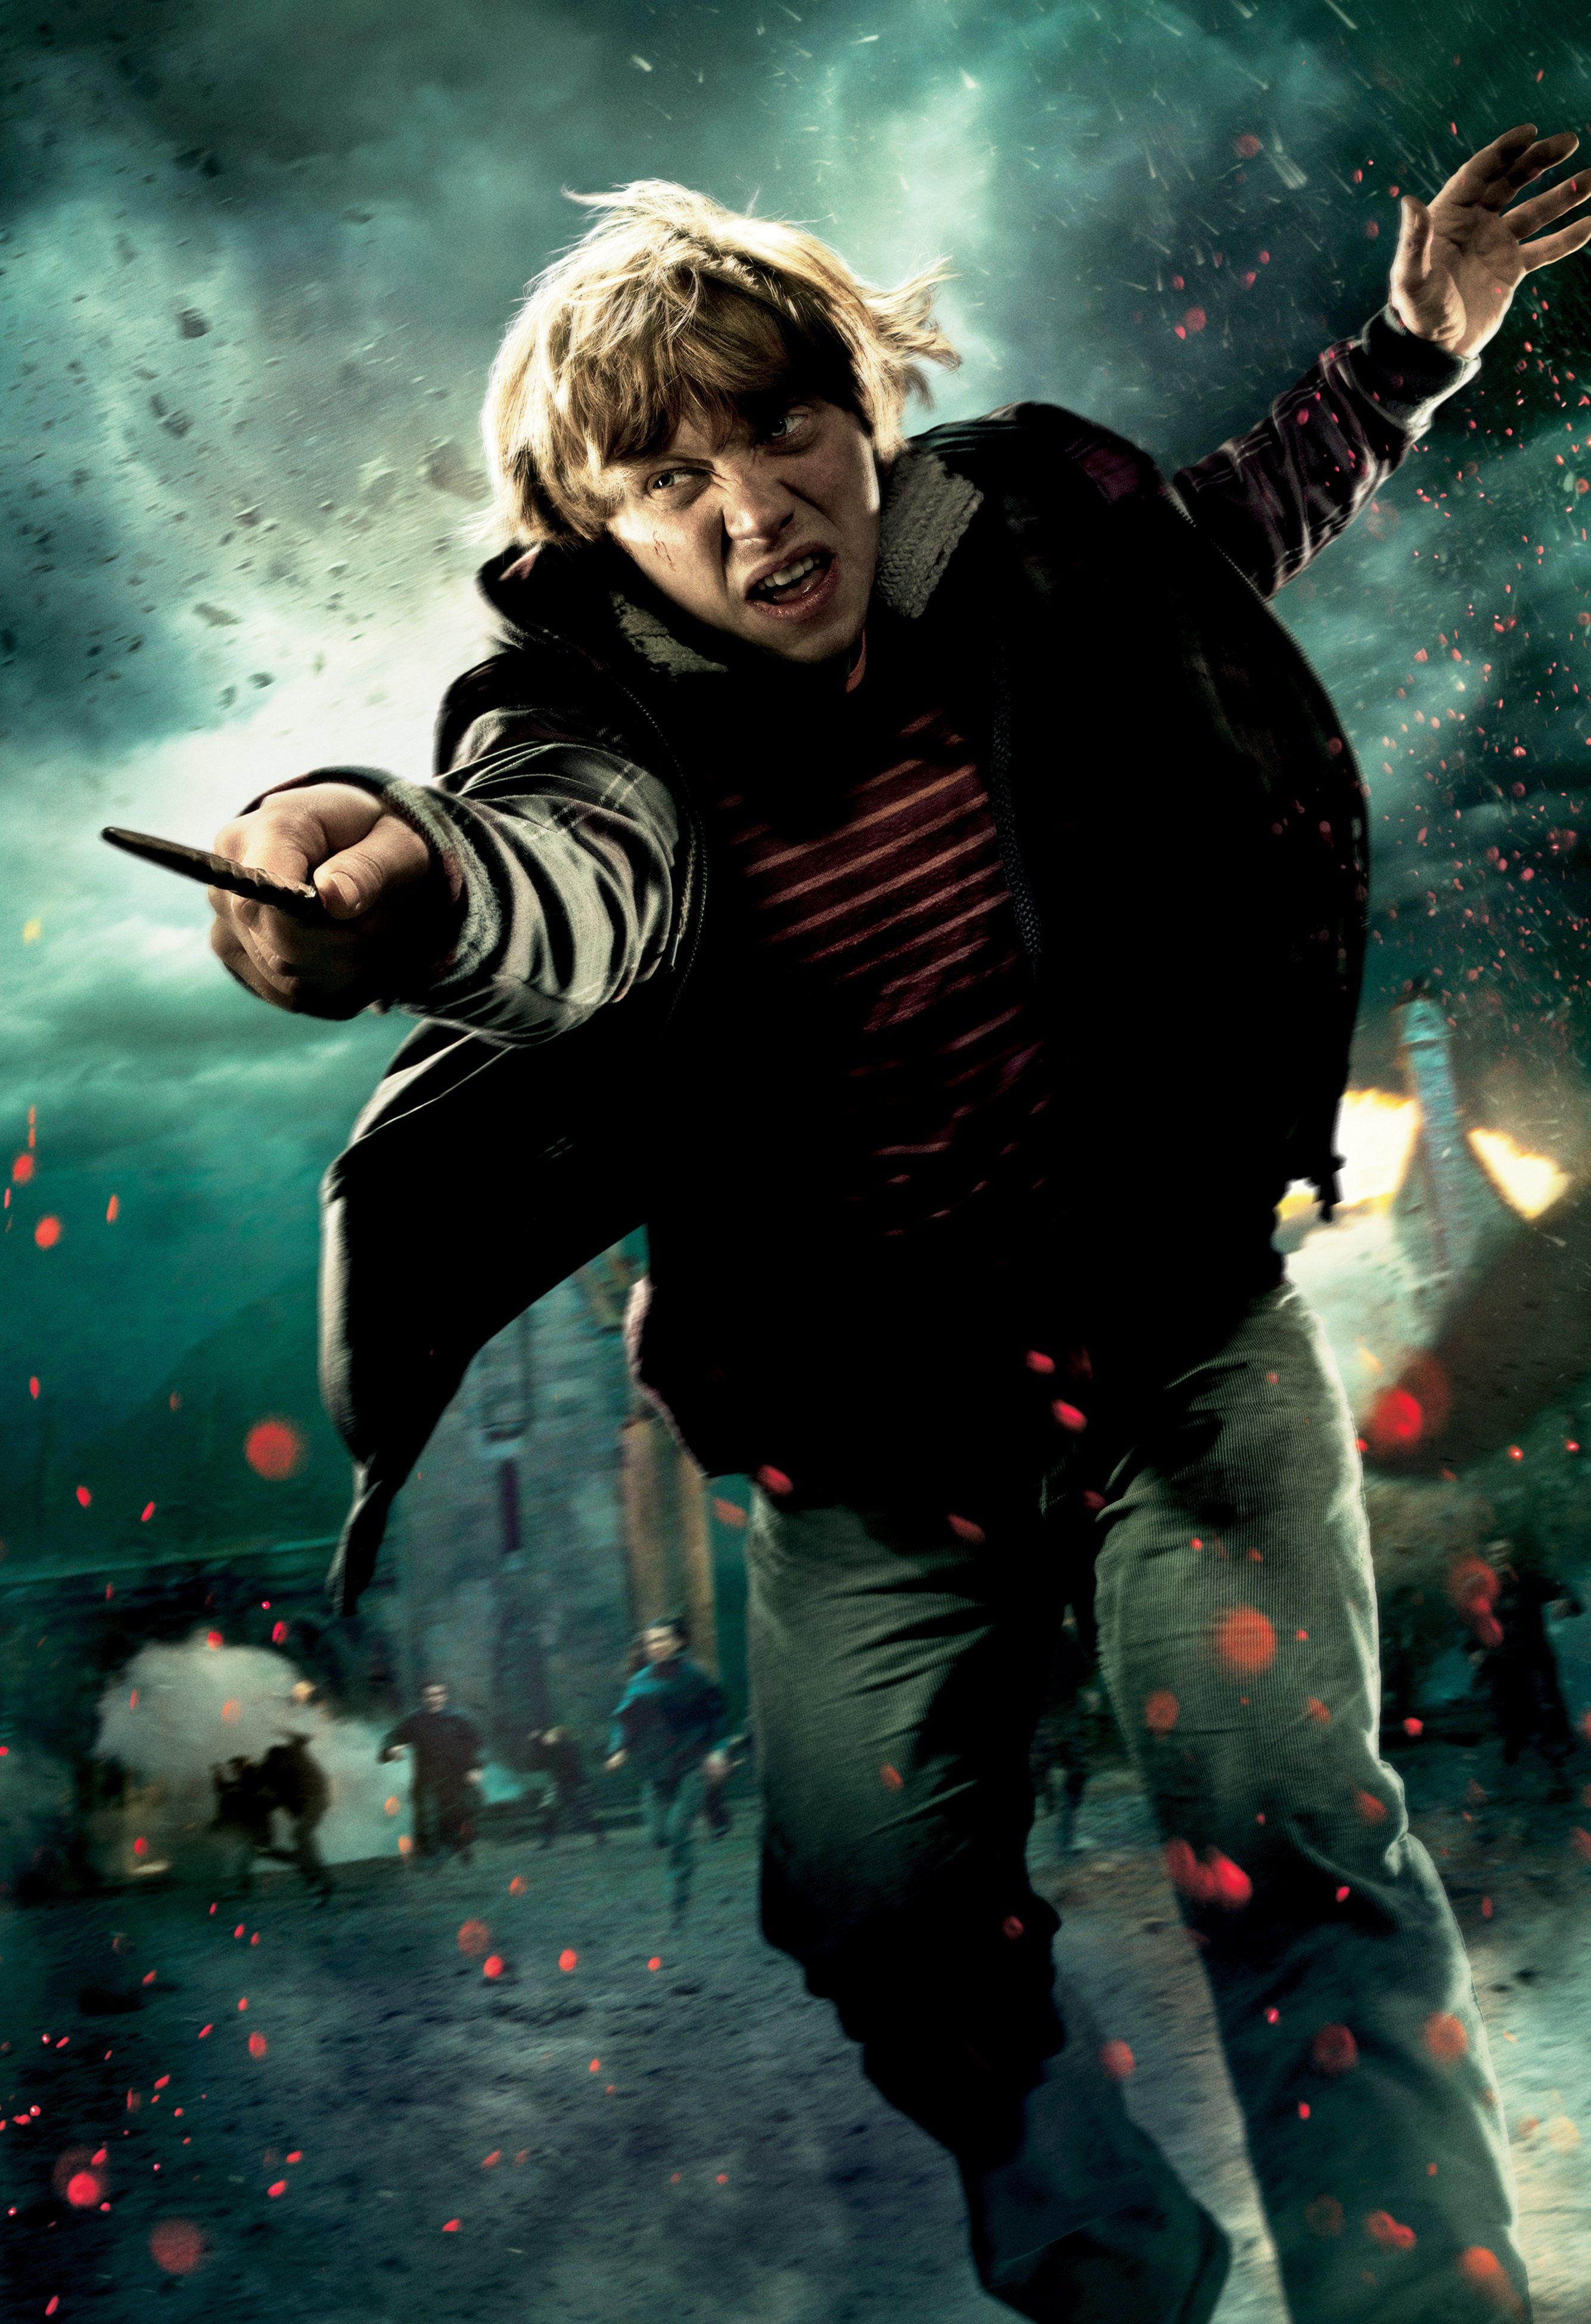 Harry Potter 7 Part 2 Harry Potter Hermione Harry Potter Deathly Hallows Harry Potter Characters